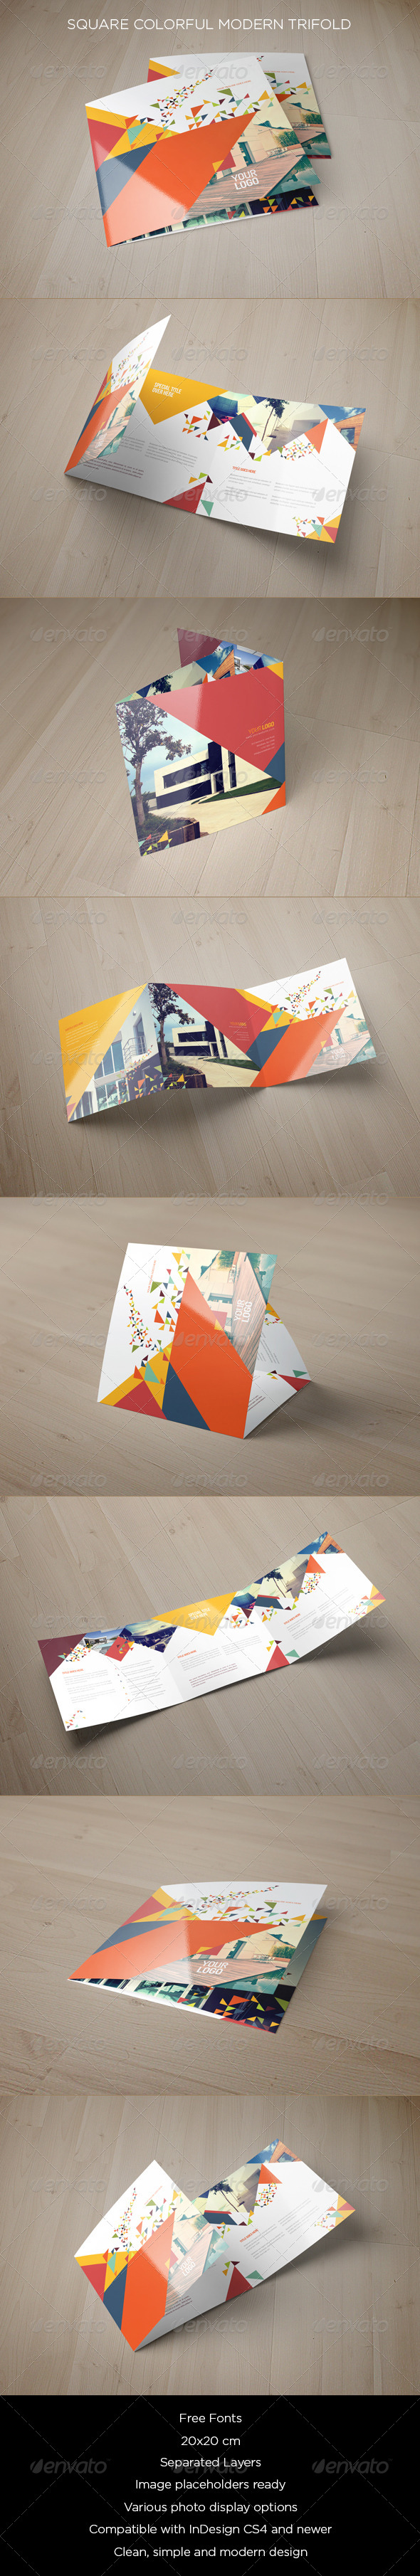 GraphicRiver Square Colorful Modern Trifold 8511778